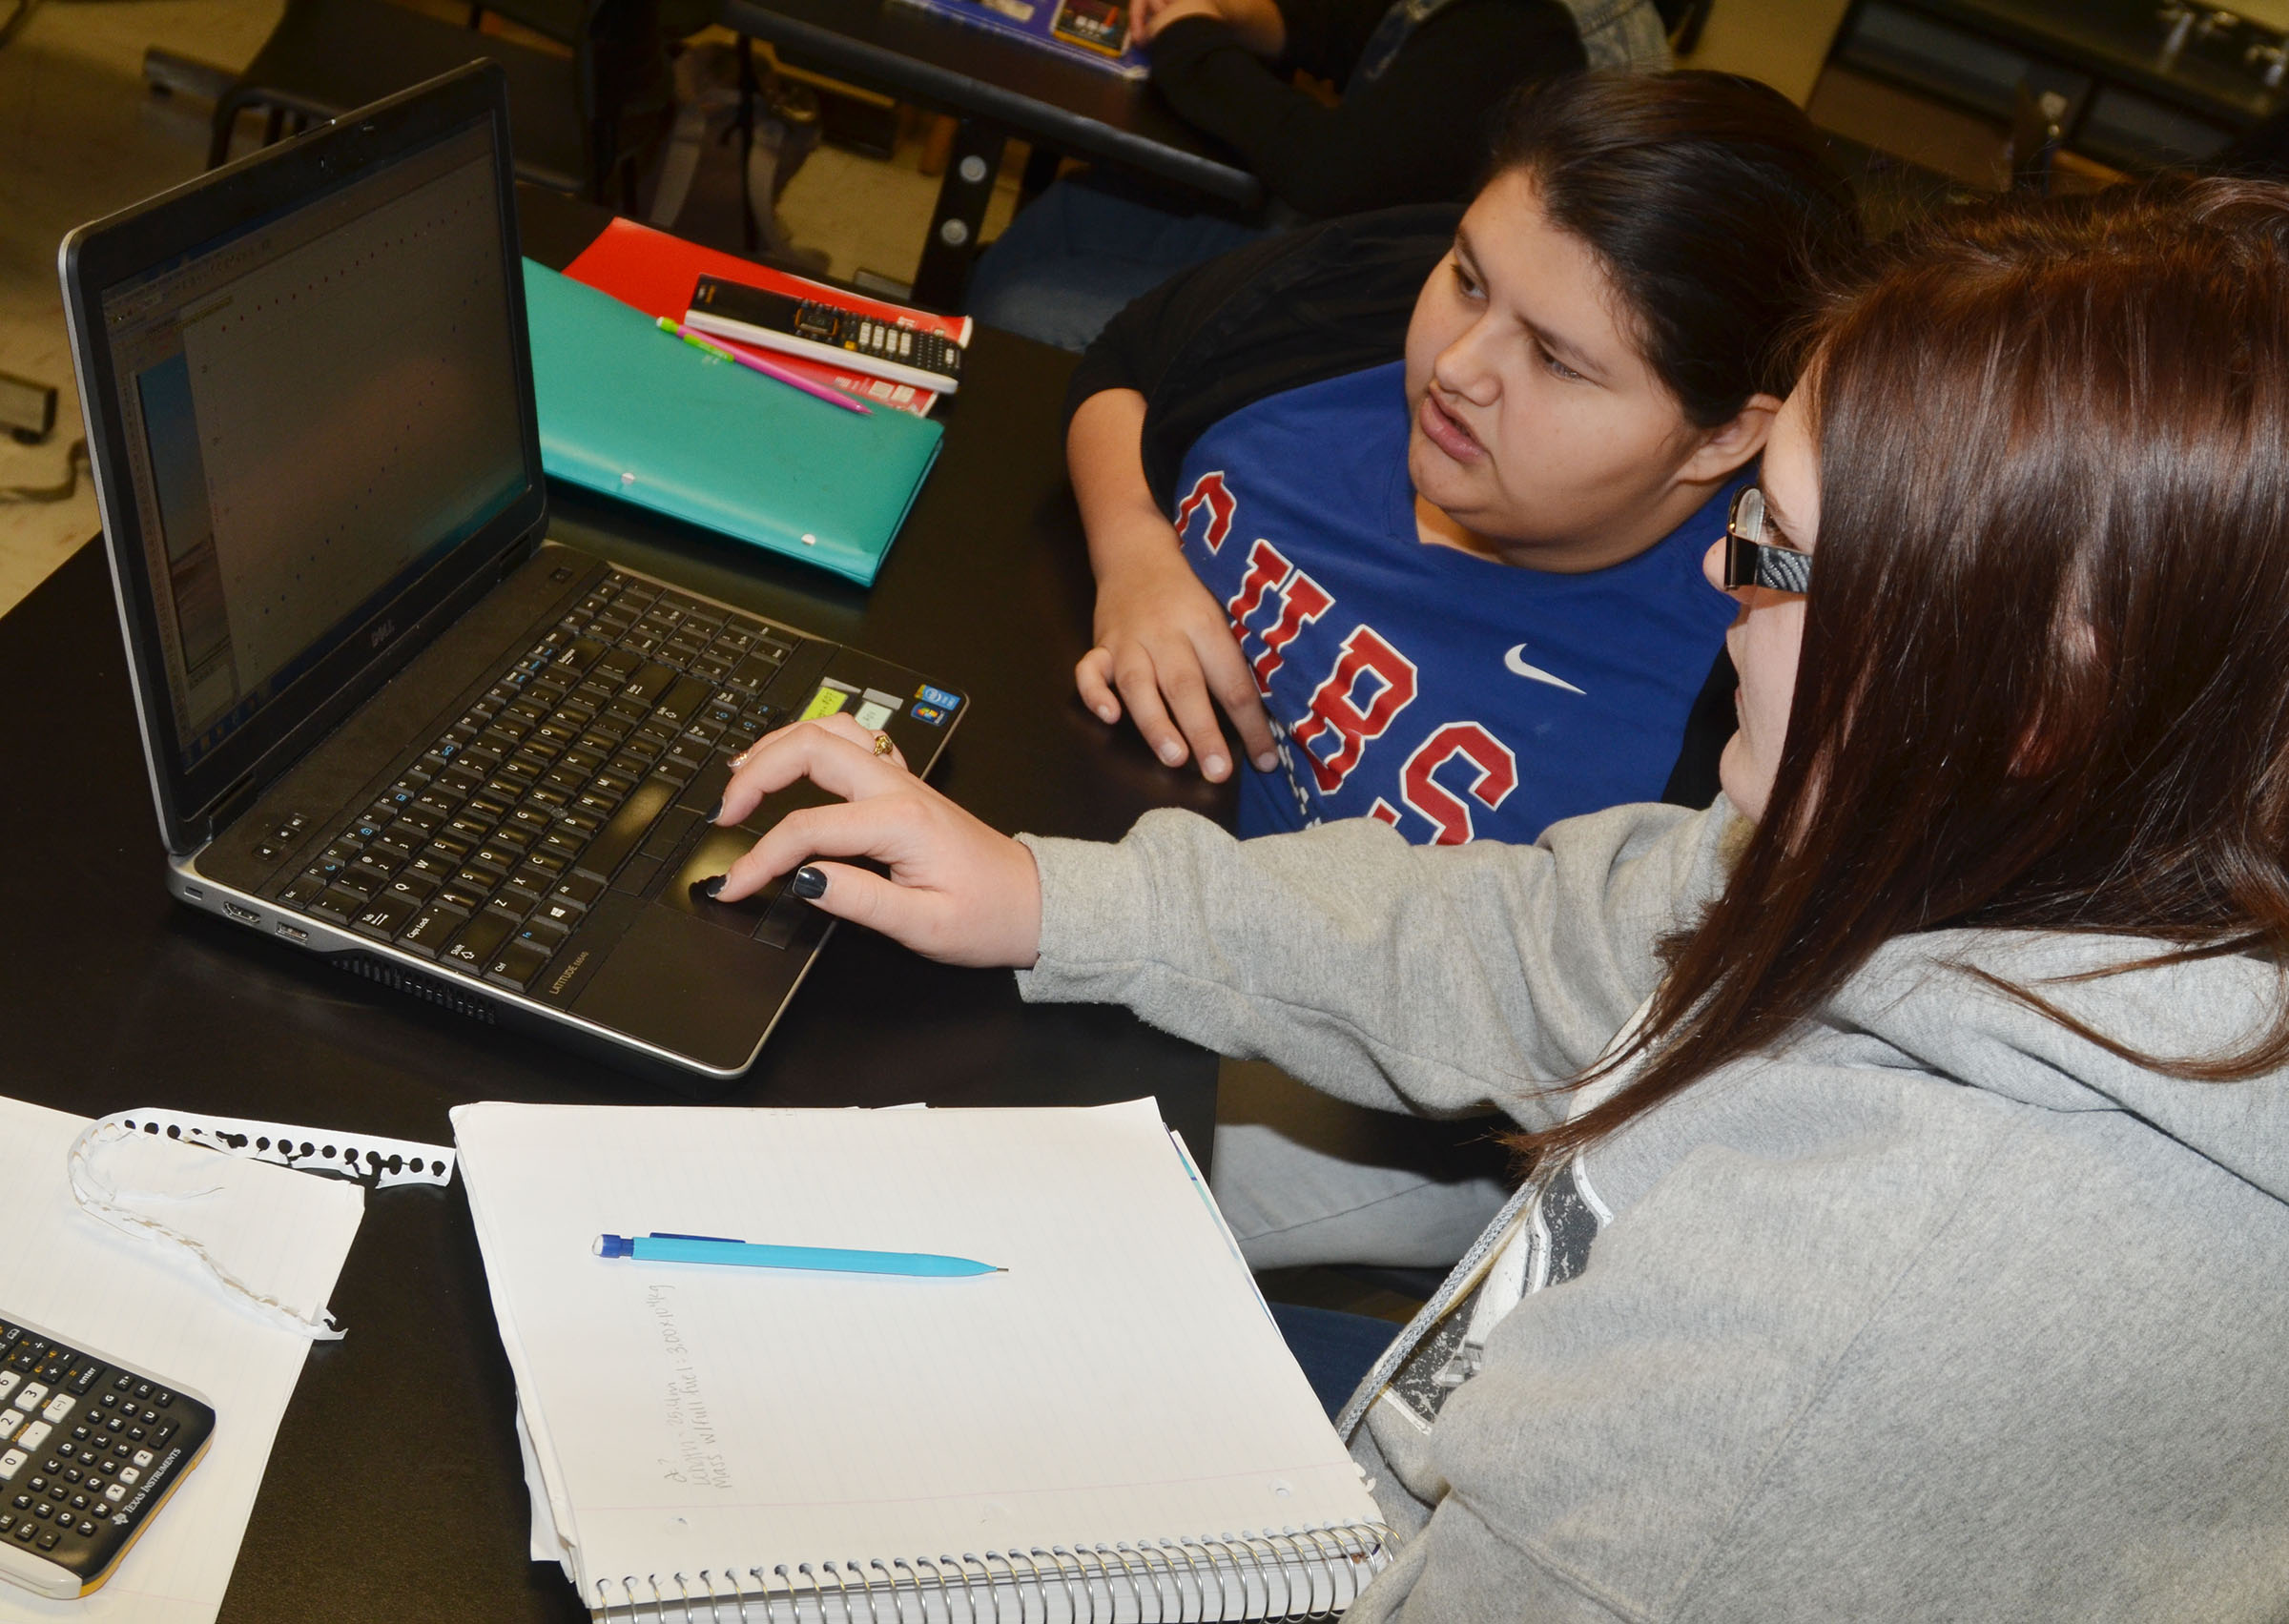 CHS seniors Laura May Gutierrez, at left, and Vera Brown analyze data with the Logger Pro software.